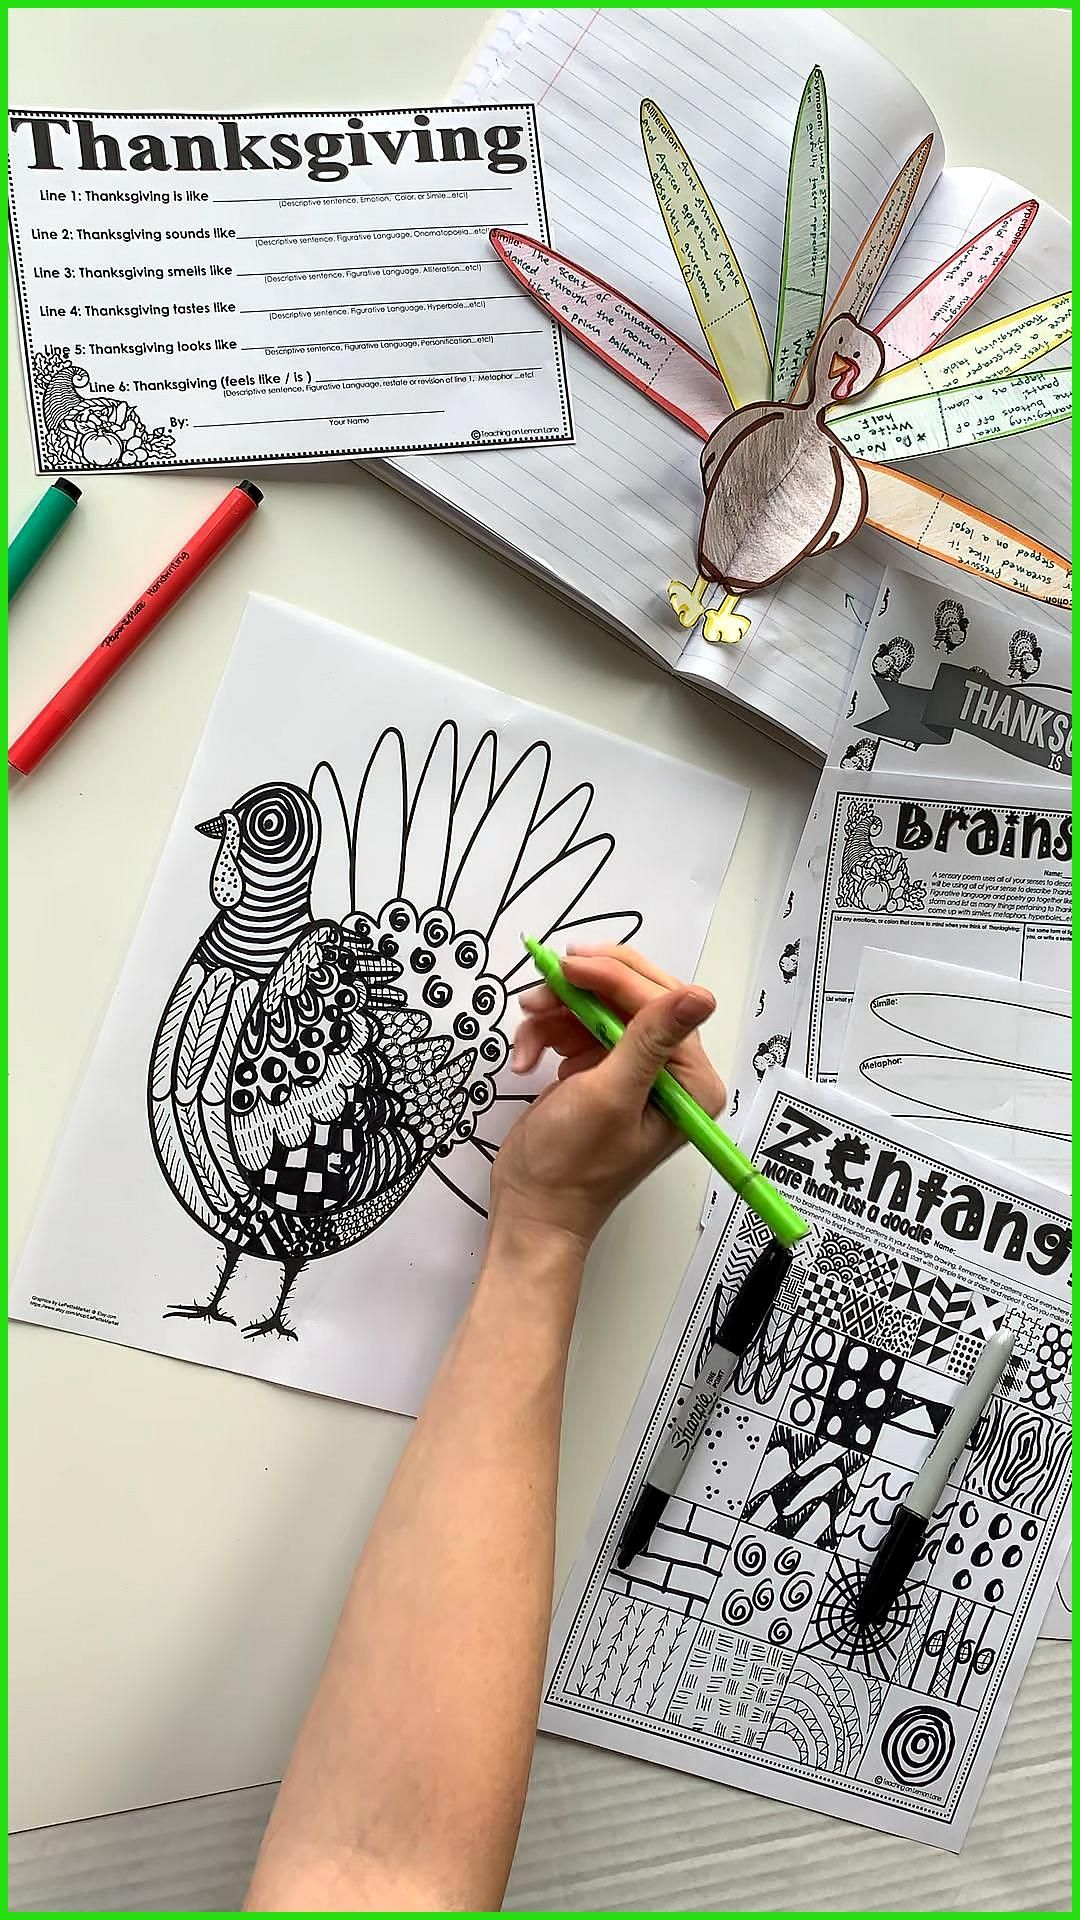 My Favorite Thanksgiving Activities for The Classroom During November Thanksgiving Art & Poetry-